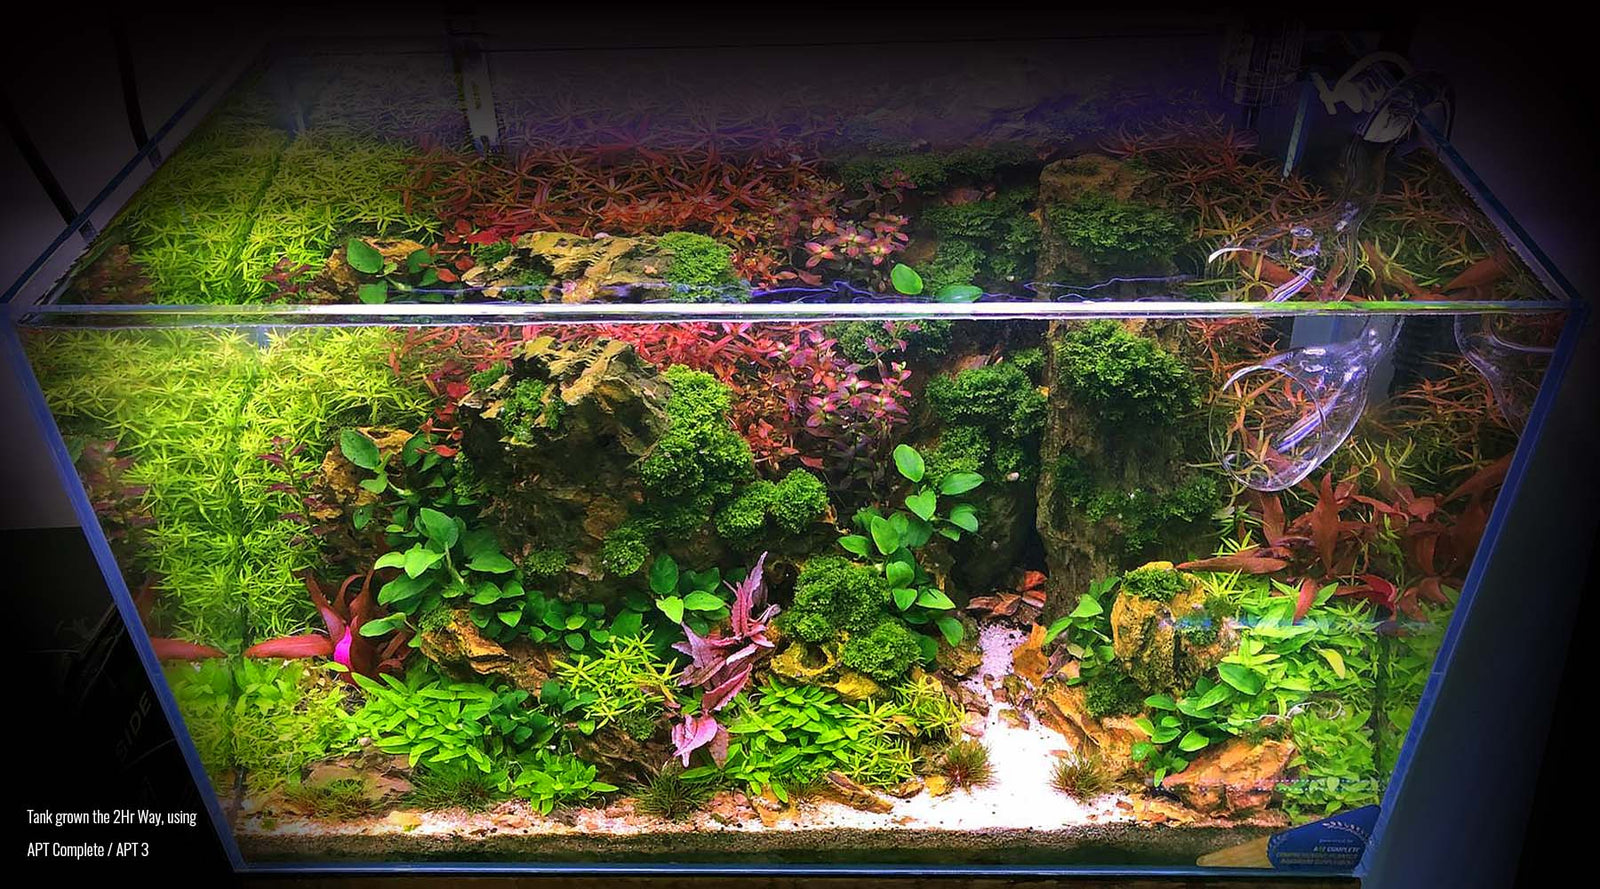 Planted Tank 101 The 2hr Aquarist